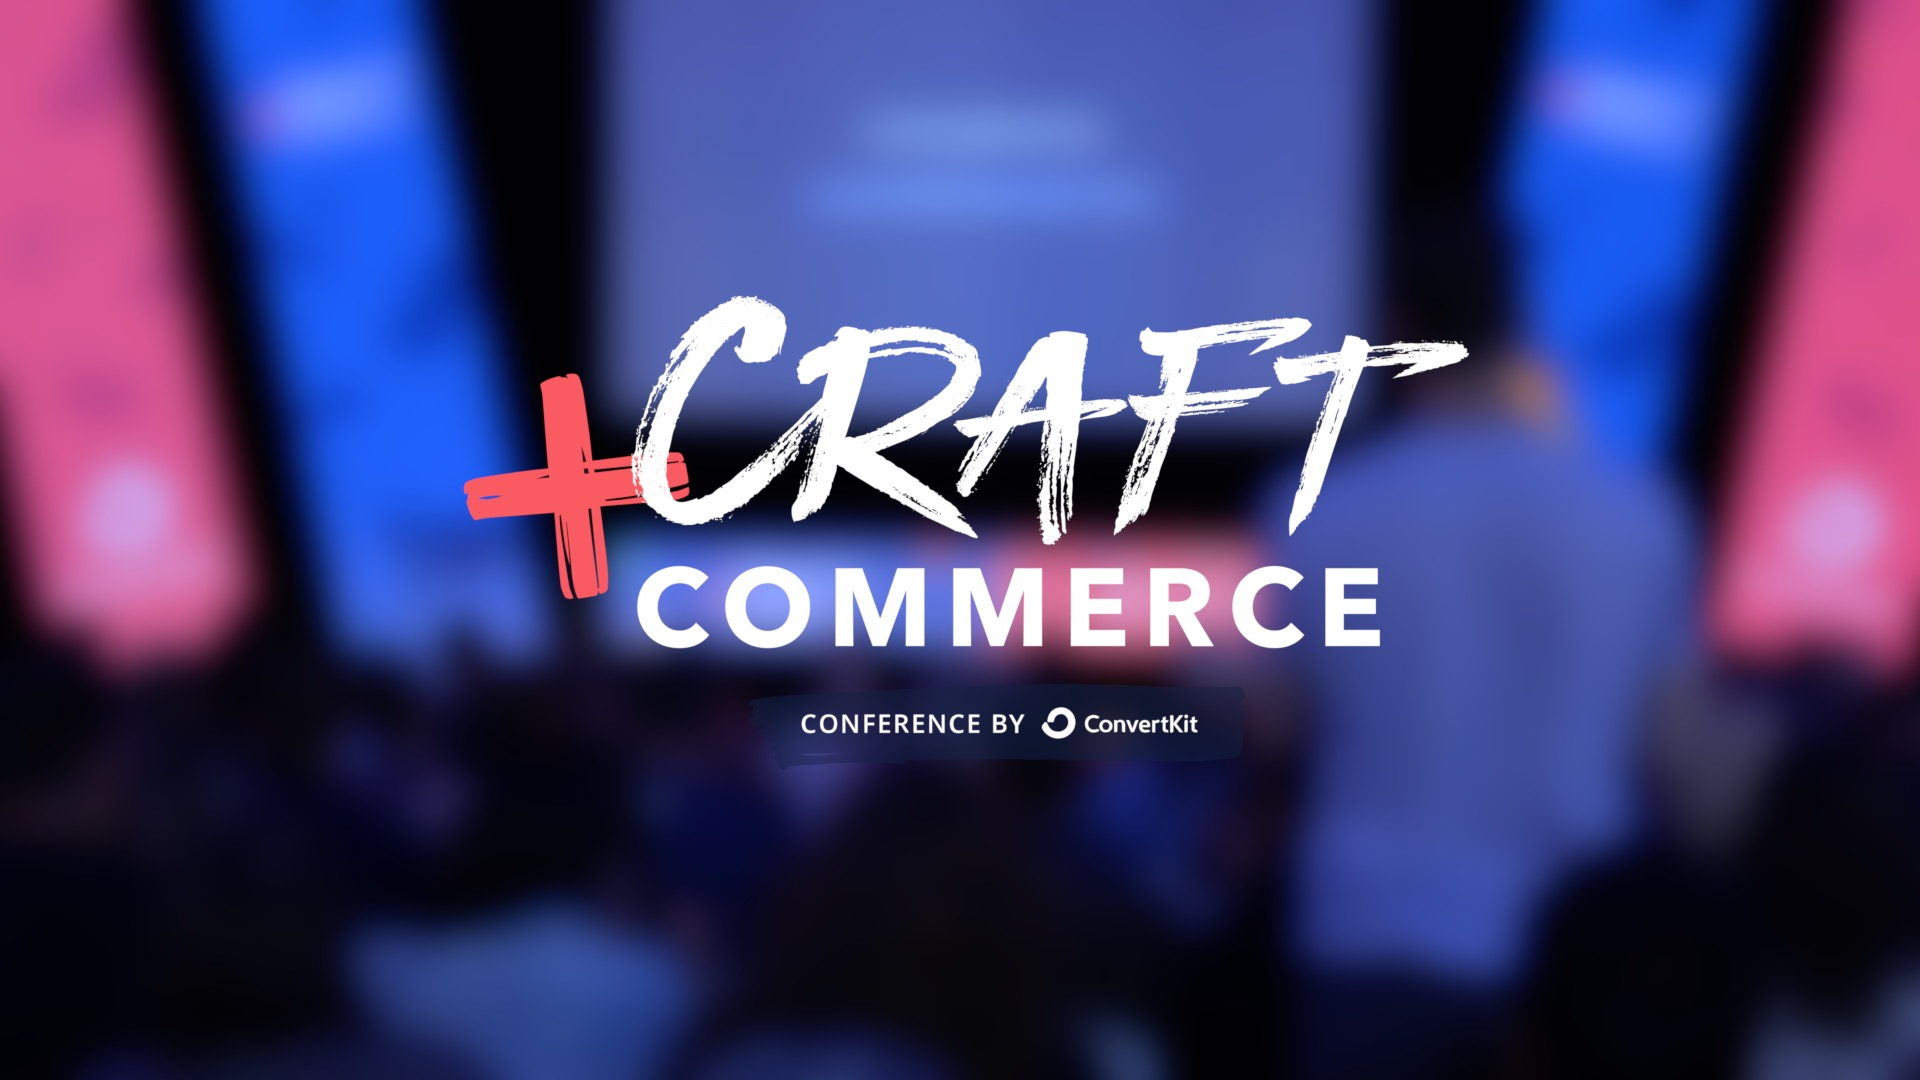 """in June 2019, we had the opportunity to capture ConvertKit's """"Craft + Commerce"""" conference held annually in Boise, Idaho. We are in the final stages of finishing this video and can't wait to share it."""